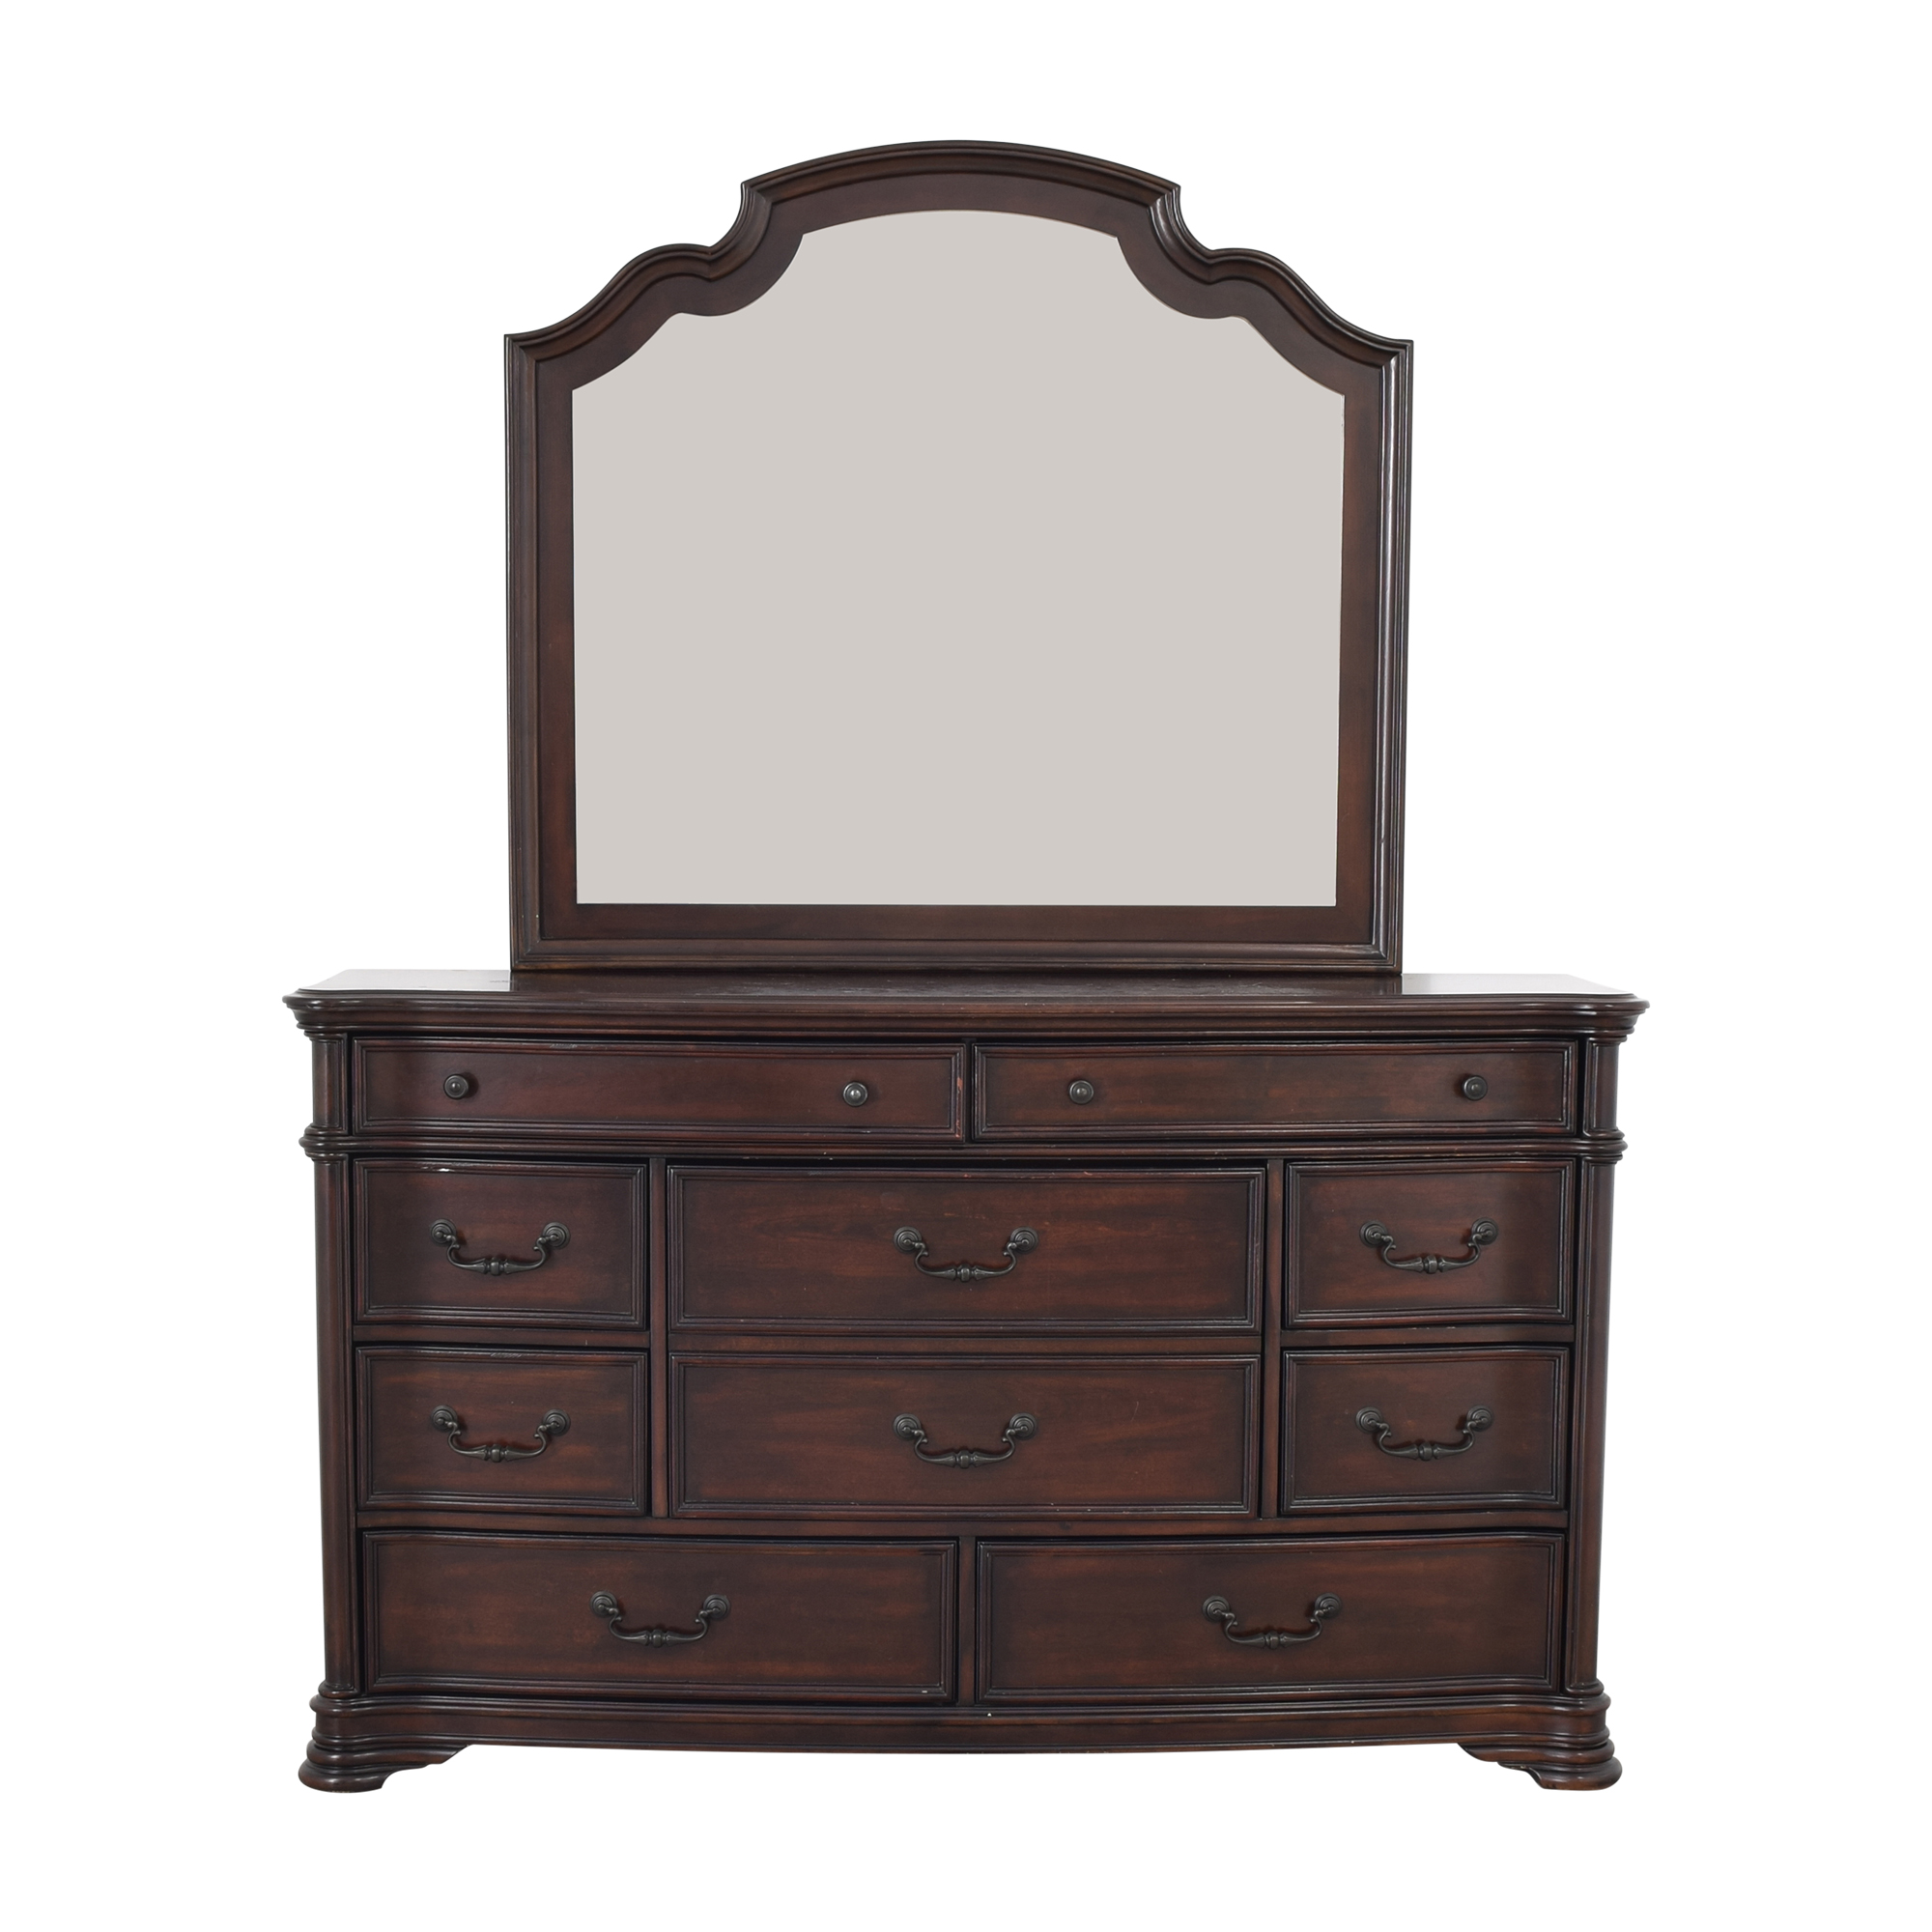 Ten Drawer Dresser and Mirror for sale